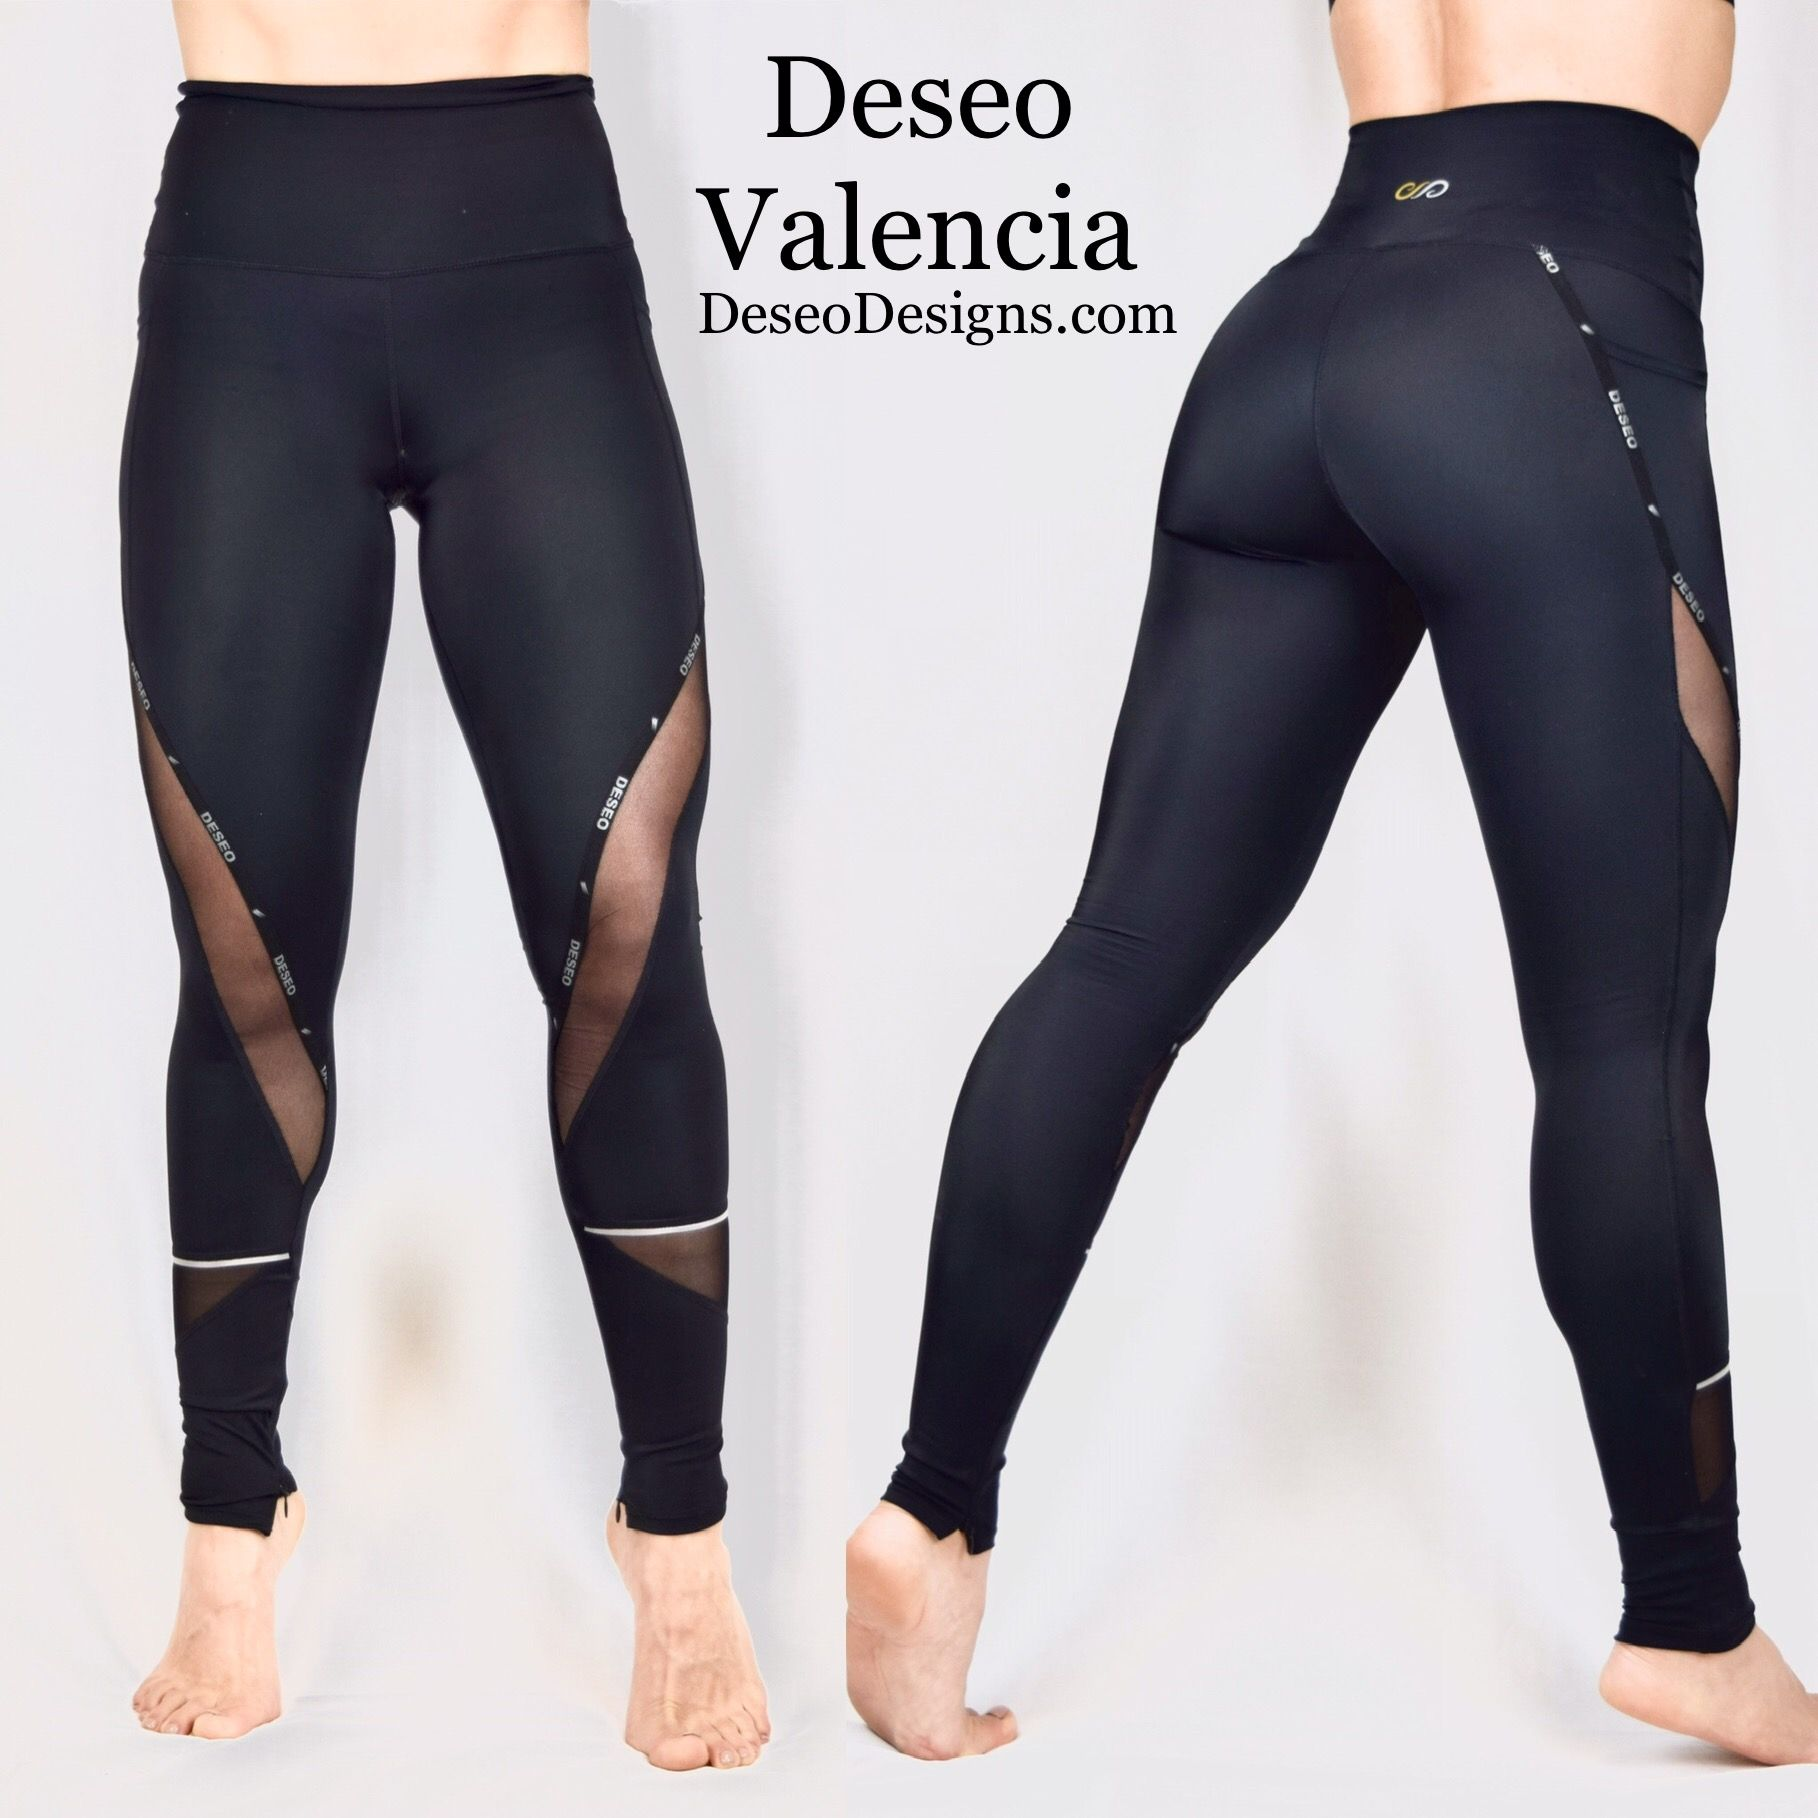 Deseo activewear! Mesh,side pockets, ankle zippers, special fit technology! Slim look , long legs ef...